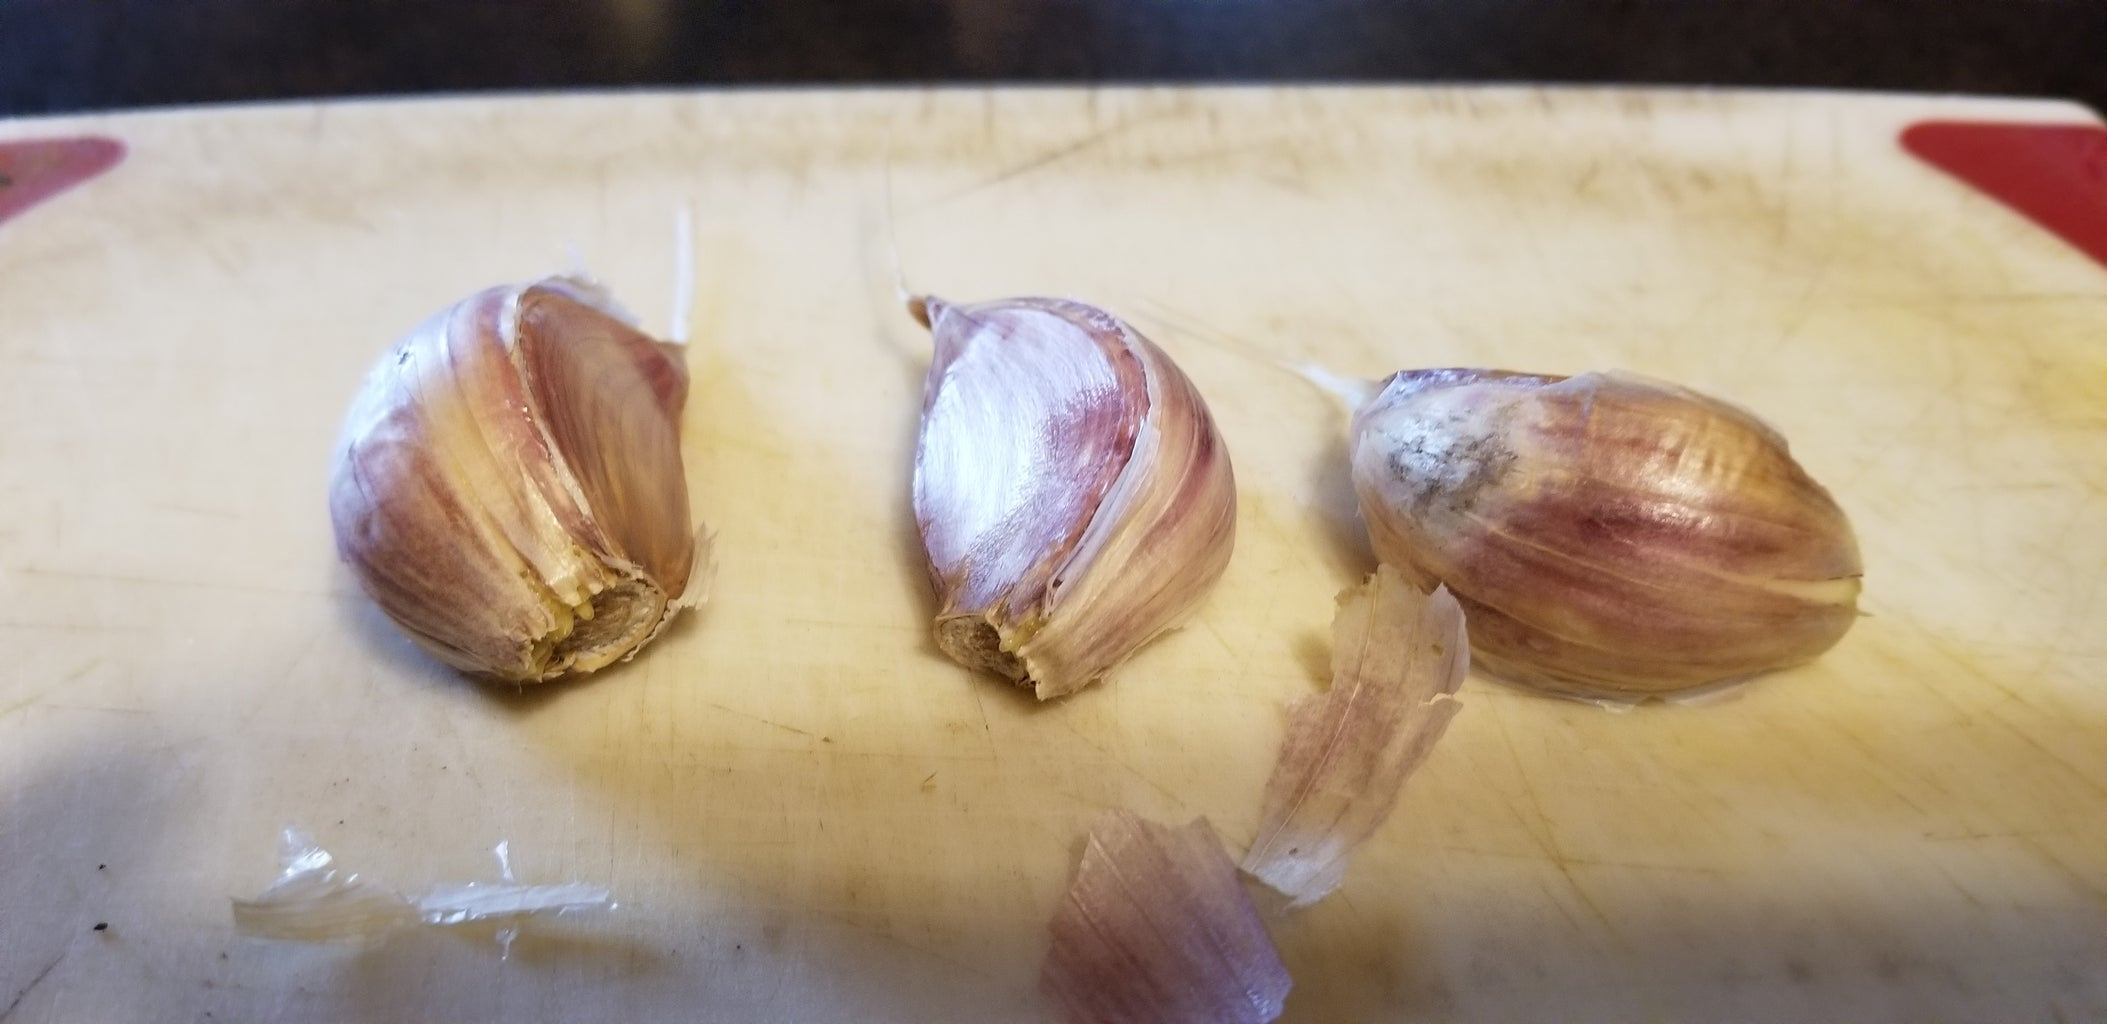 Time for the Garlic